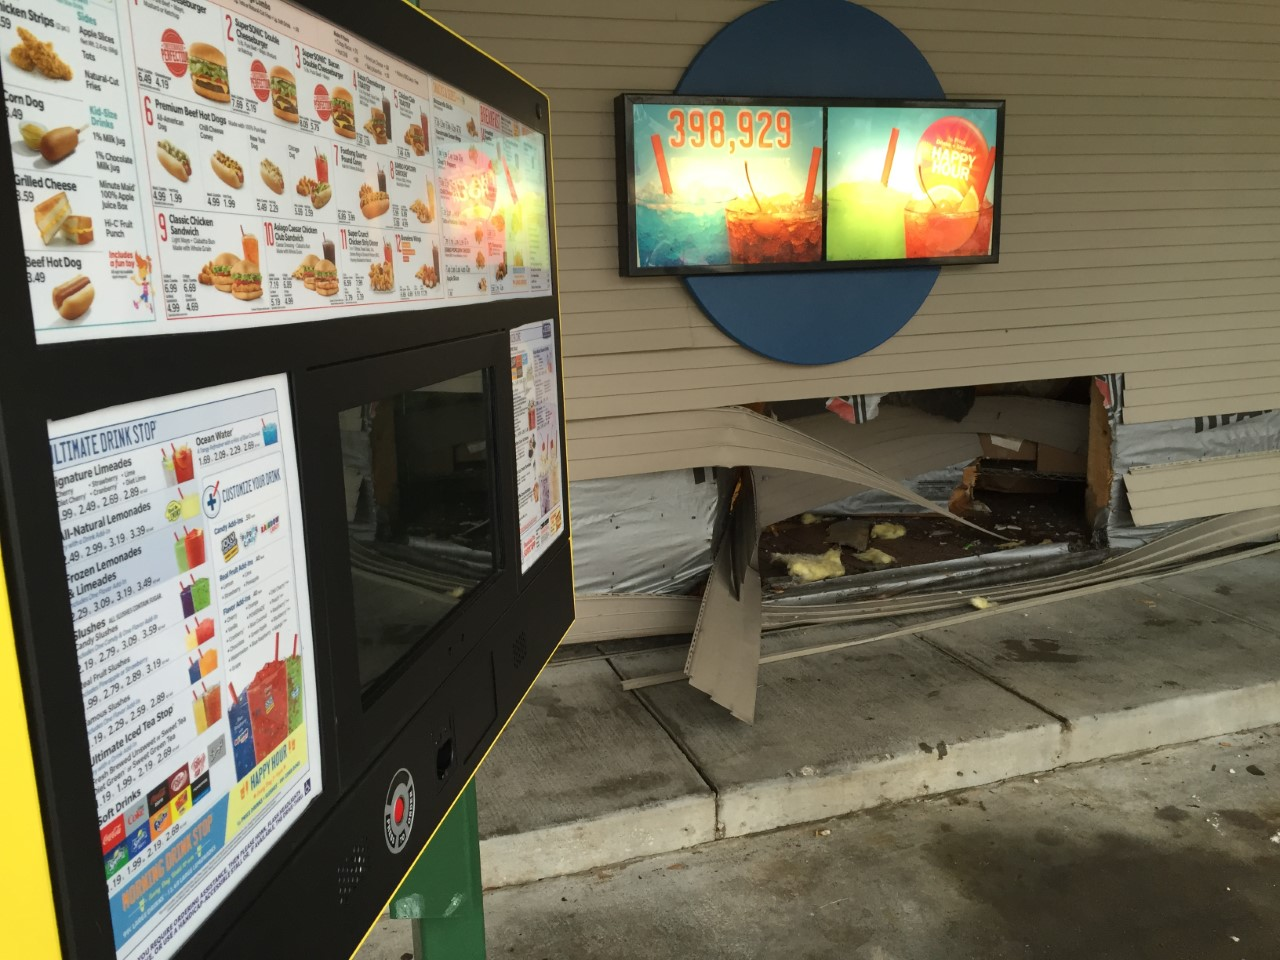 Car Drives Into Sonic_203676